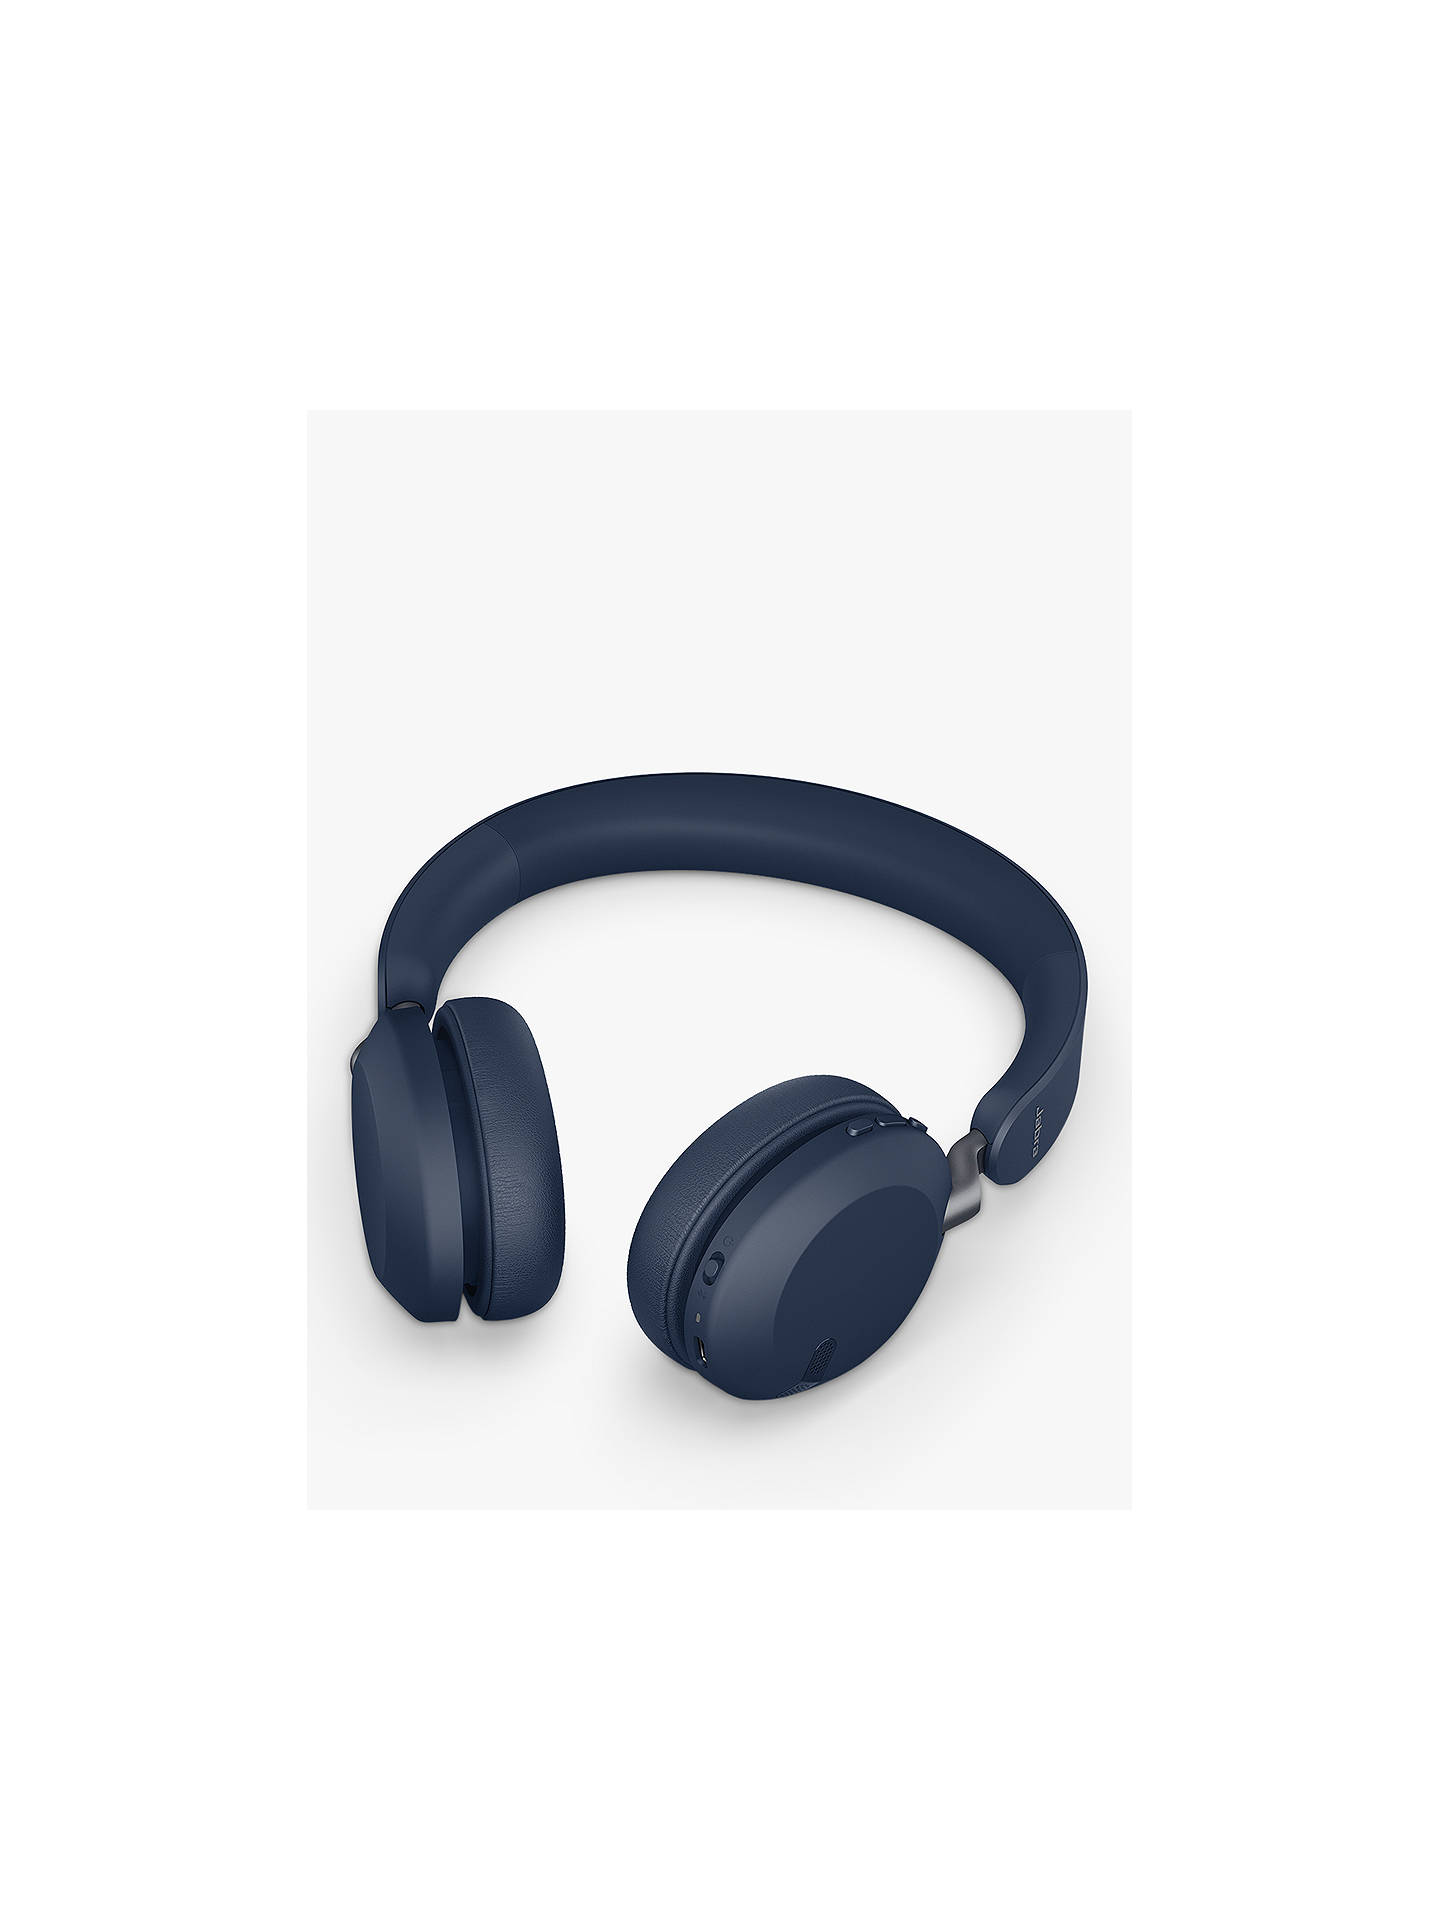 Buy Jabra Elite 45h Wireless Bluetooth On-Ear Headphones with Mic/Remote, Navy Blue Online at johnlewis.com